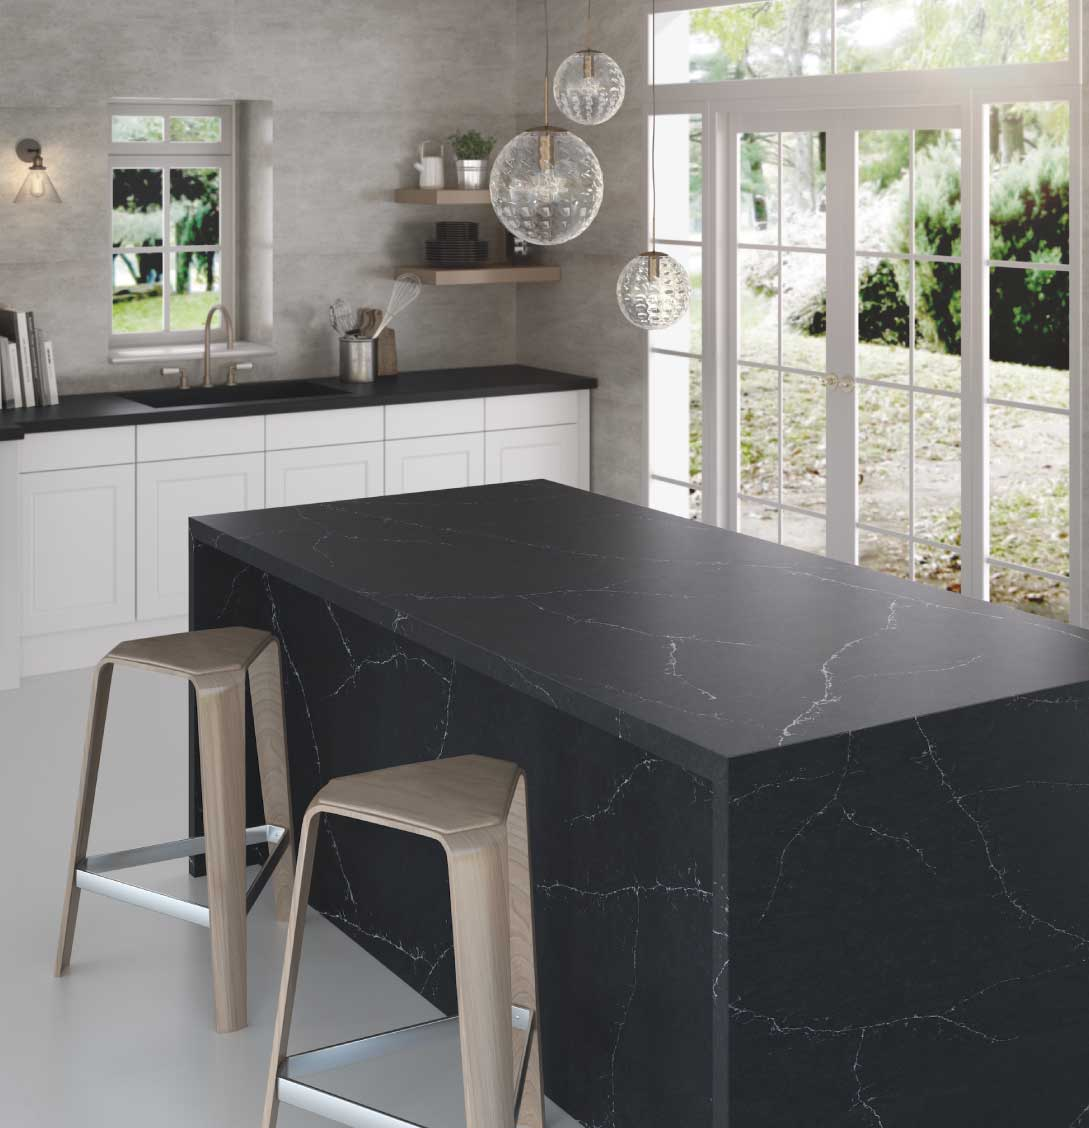 Silestone Charcoal Soapstone quartz countertop kitchen